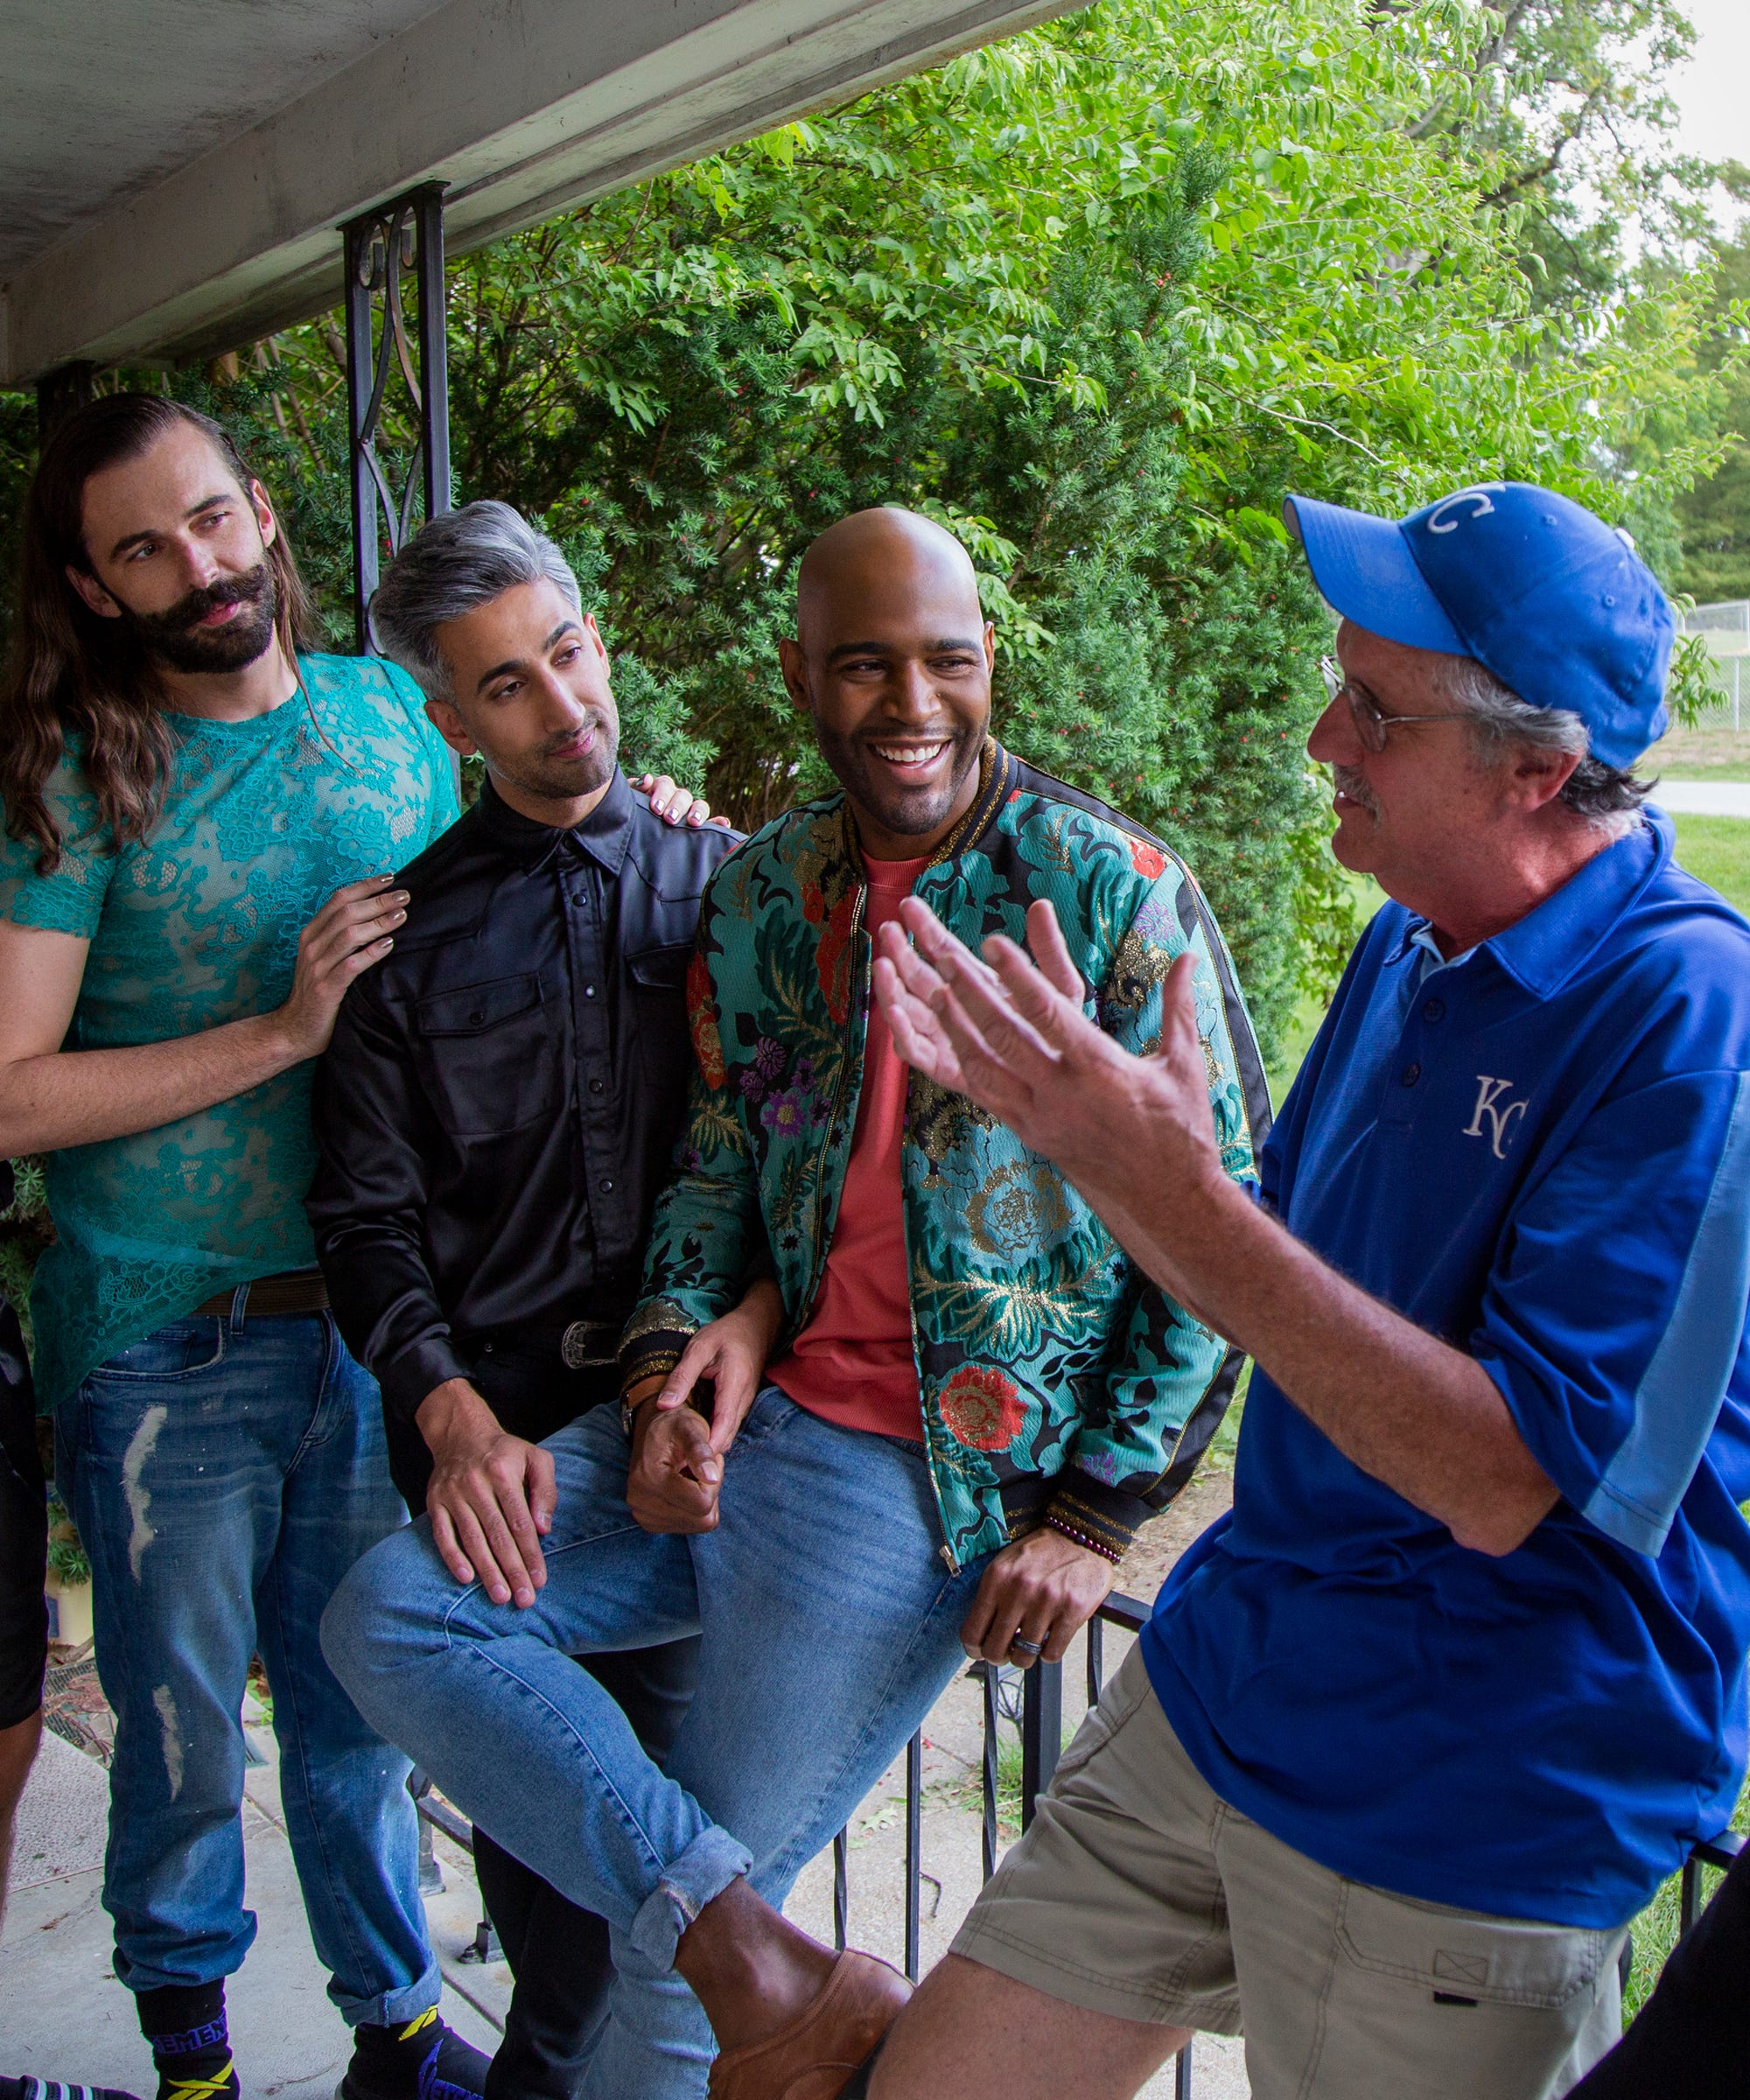 Your Guide To Queer Eye Season 4, The Most Charitable Season Yet